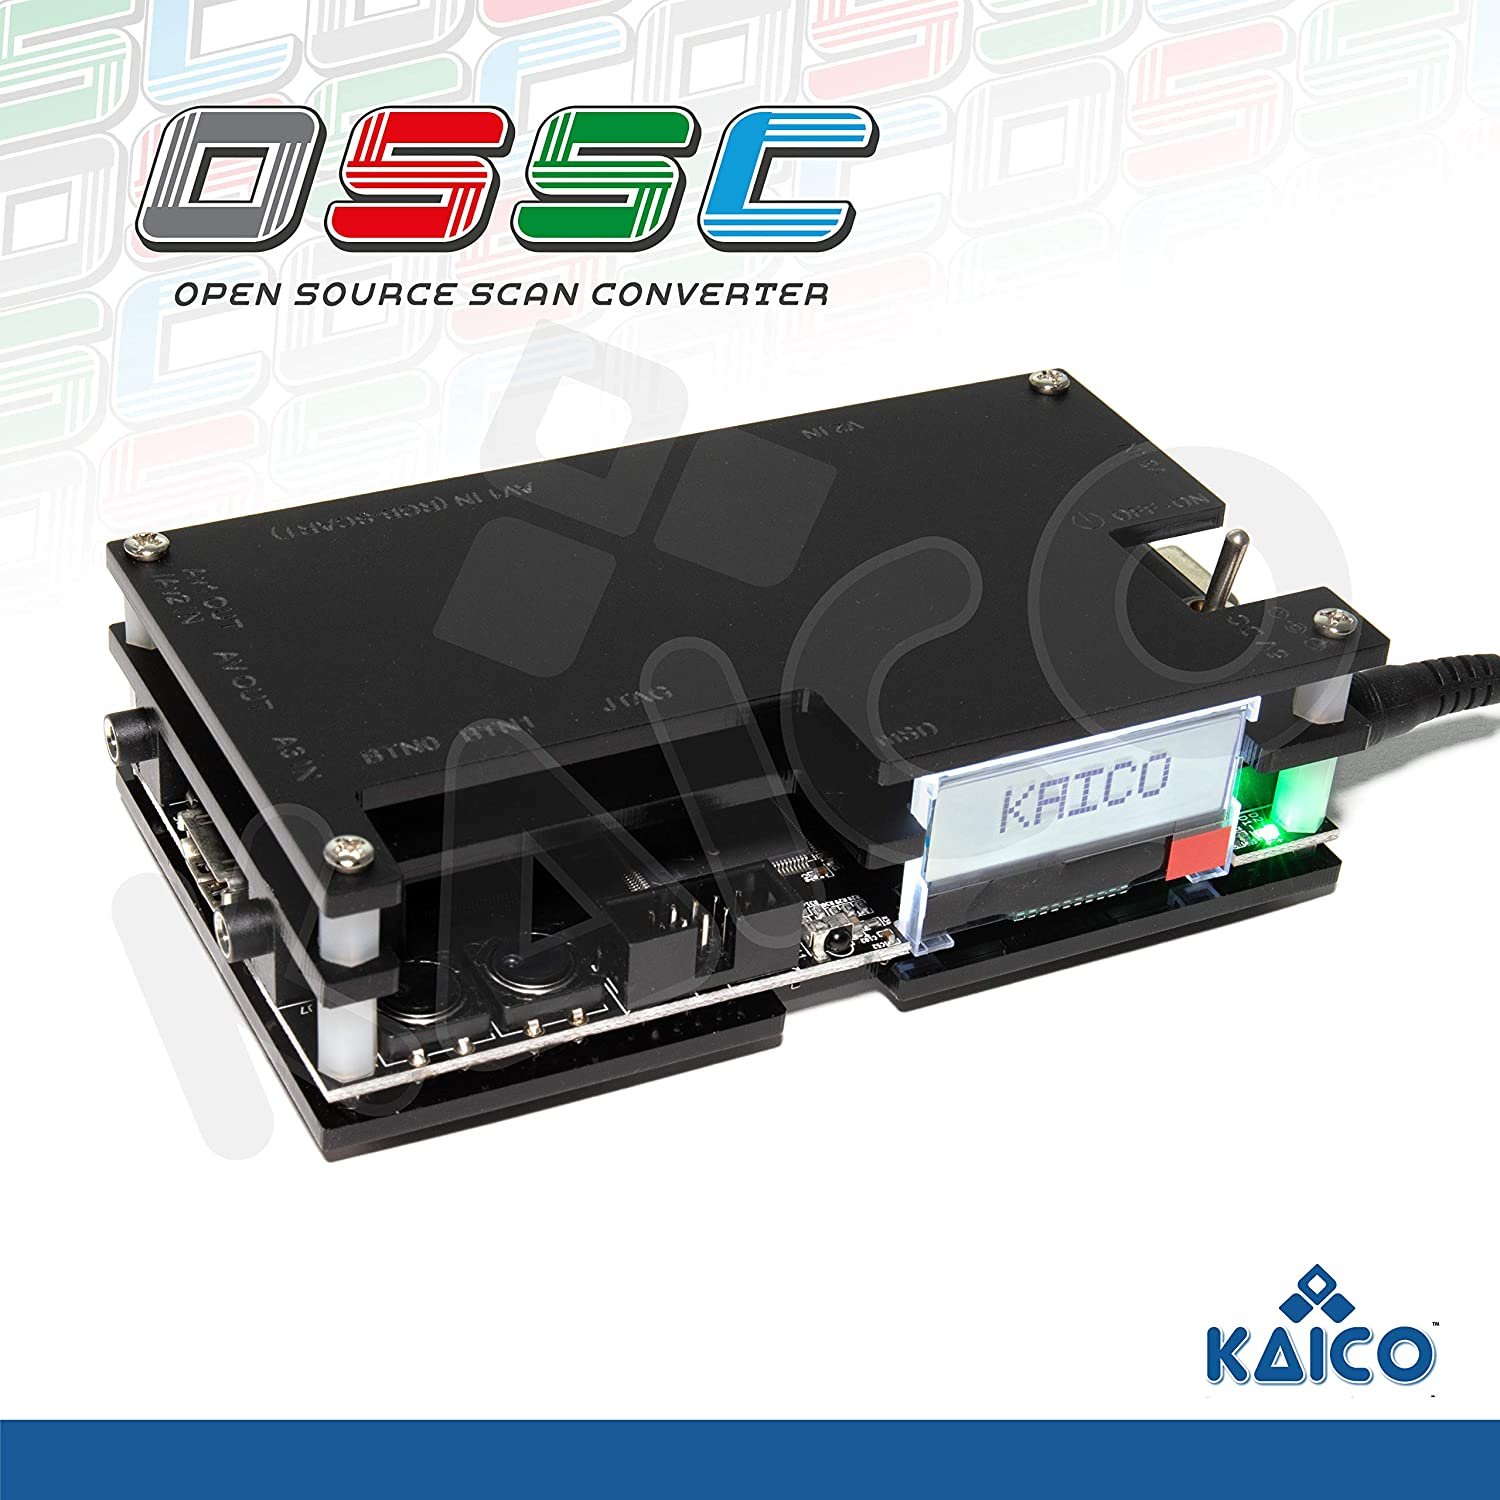 Kaico Edition OSSC Open Source Scan Converter 1.6 with SCART, Component and VGA to HDMI for Retro Gaming. Line Multiplier upscaler Perfect for Zero lag RGB Retro Gaming